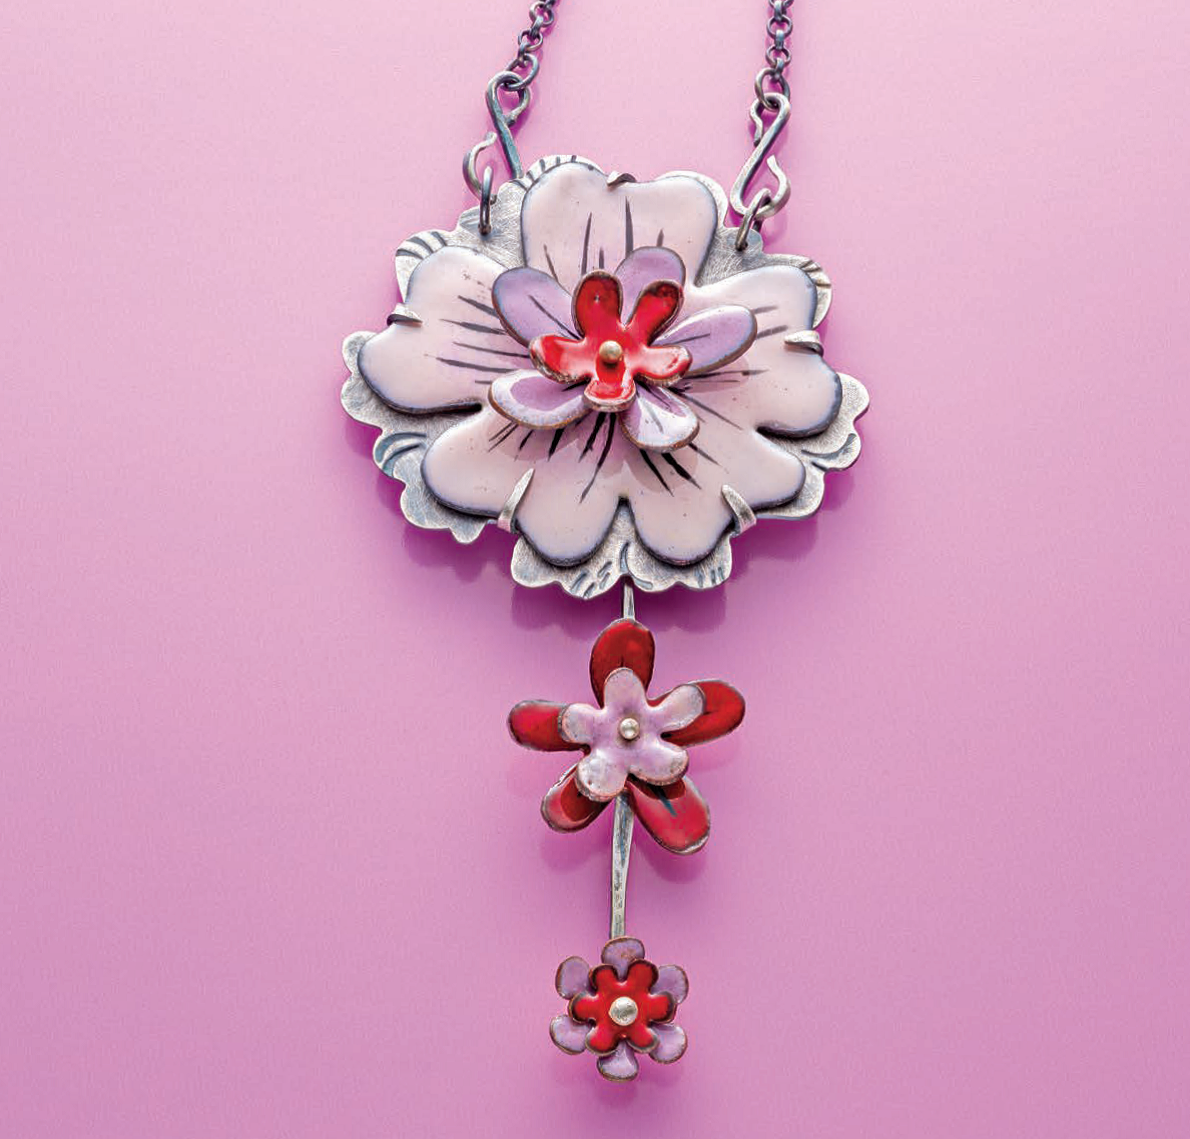 Kirsten's Torch Fired Enamel Floral Necklace project appeared in Lapidary Journal Jewelry Artist April 2016; photo: Jim Lawson